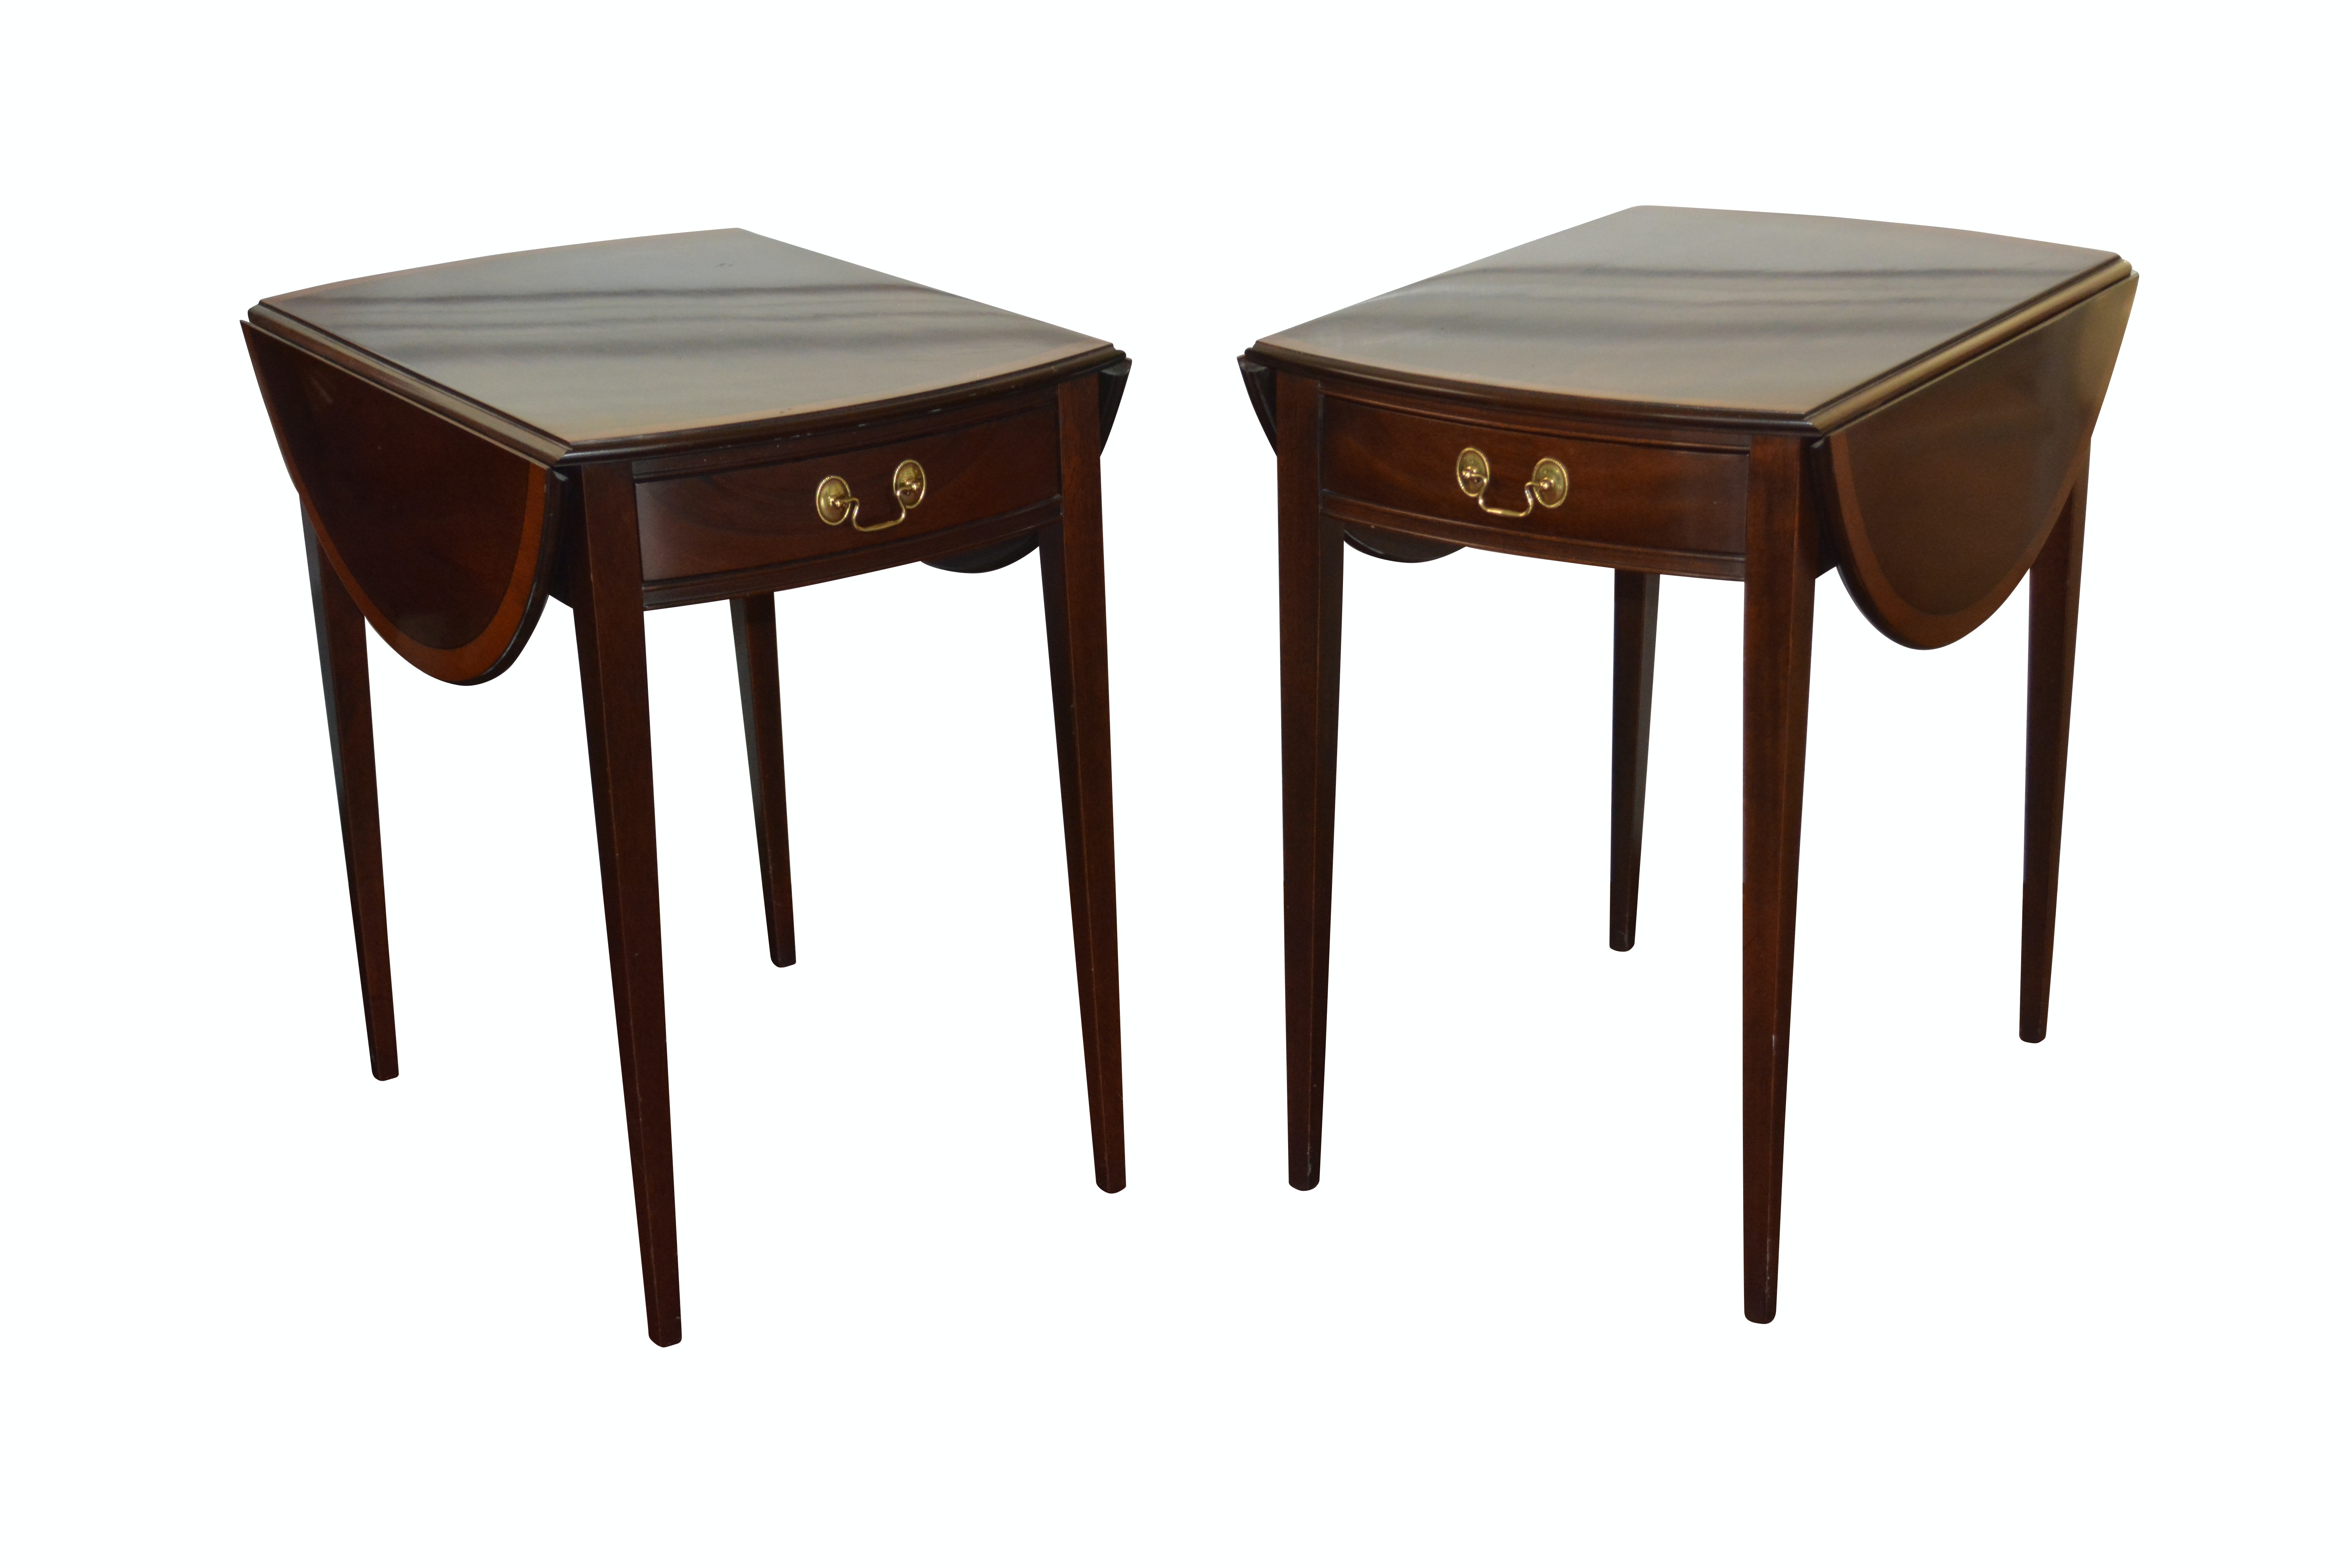 Pair of Federal Style End Tables by Stickley